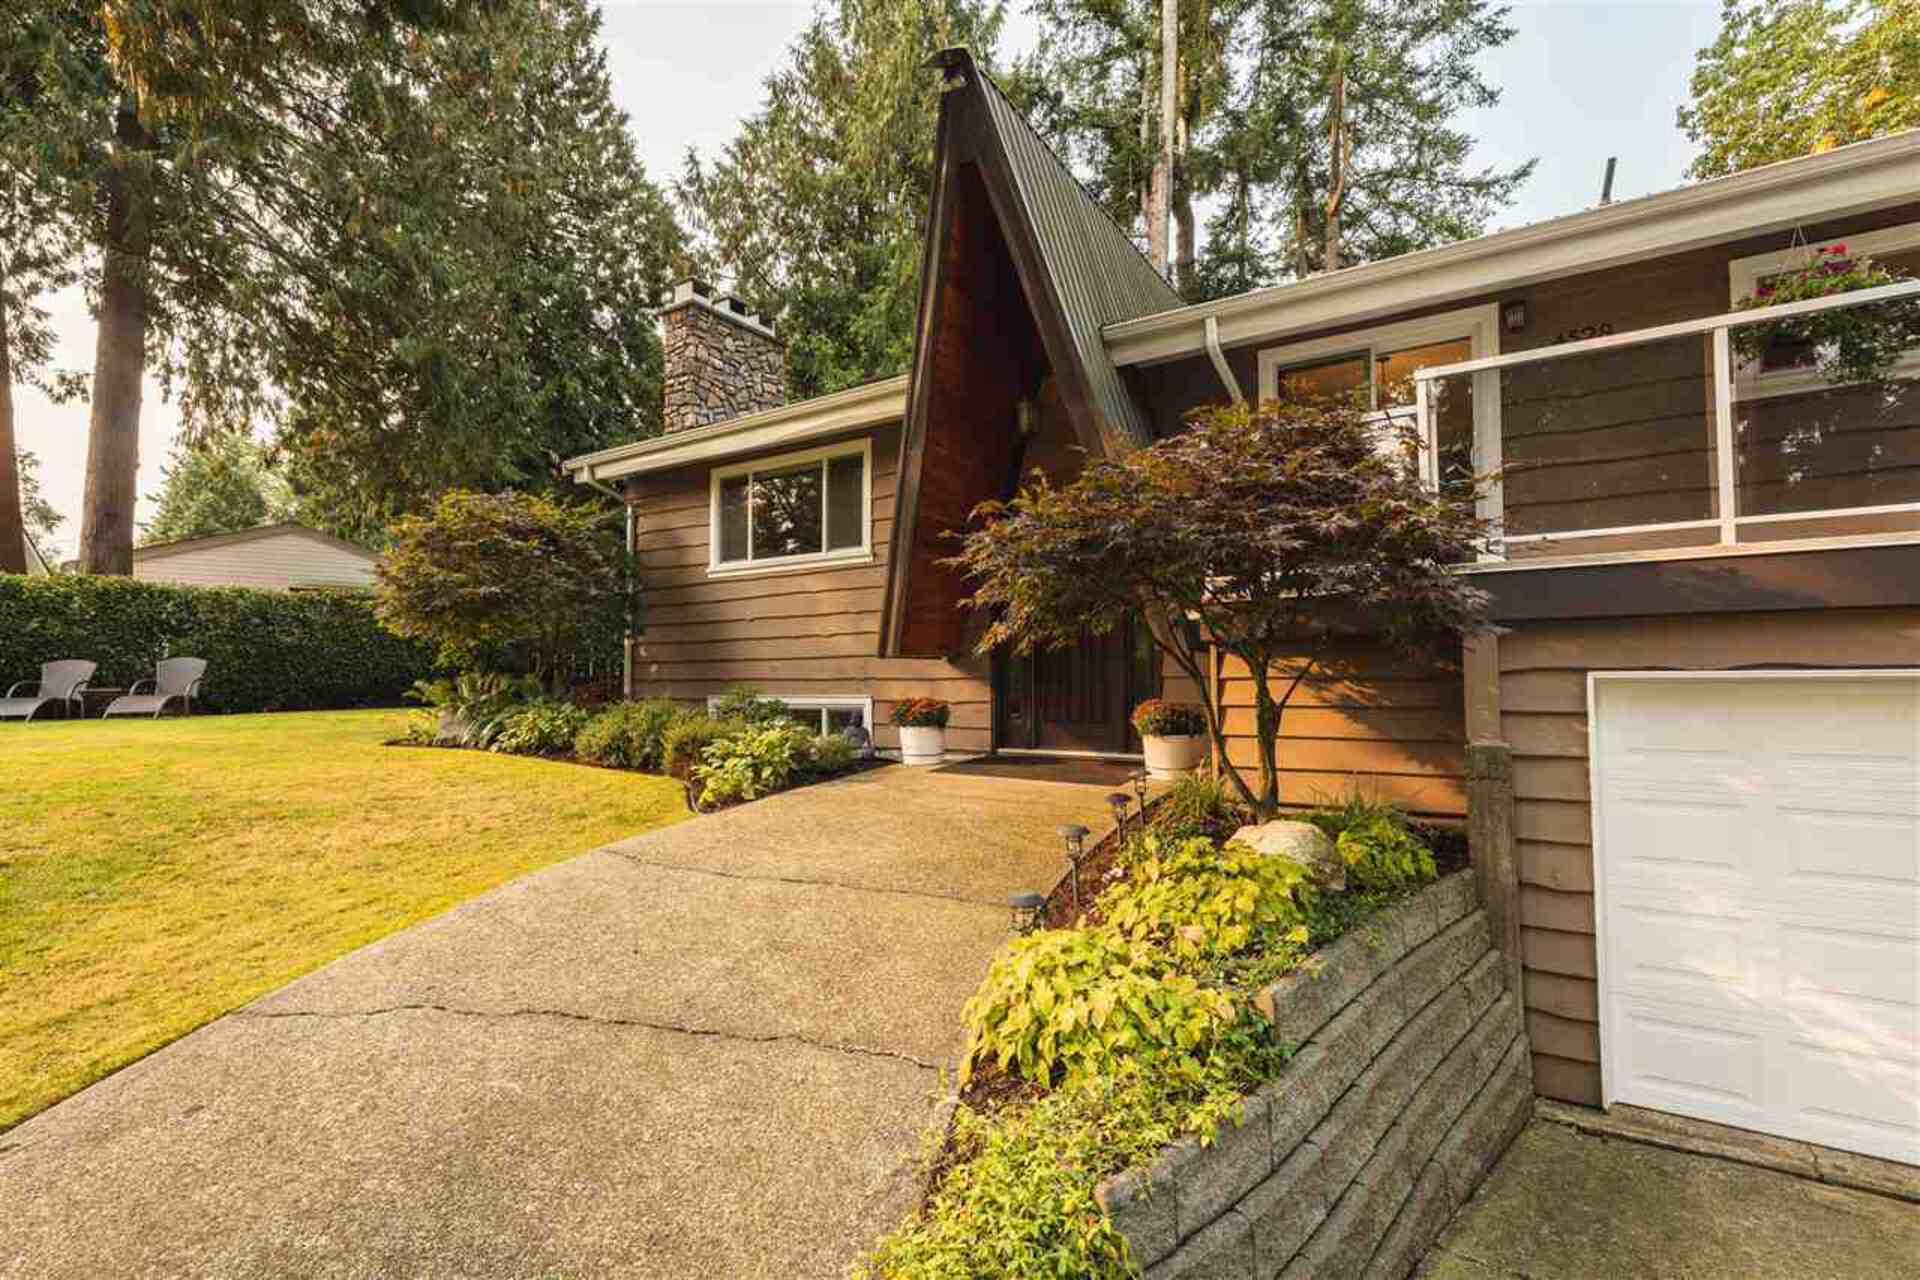 4528-southridge-crescent-murrayville-langley-06 at 4528 Southridge Crescent, Murrayville, Langley